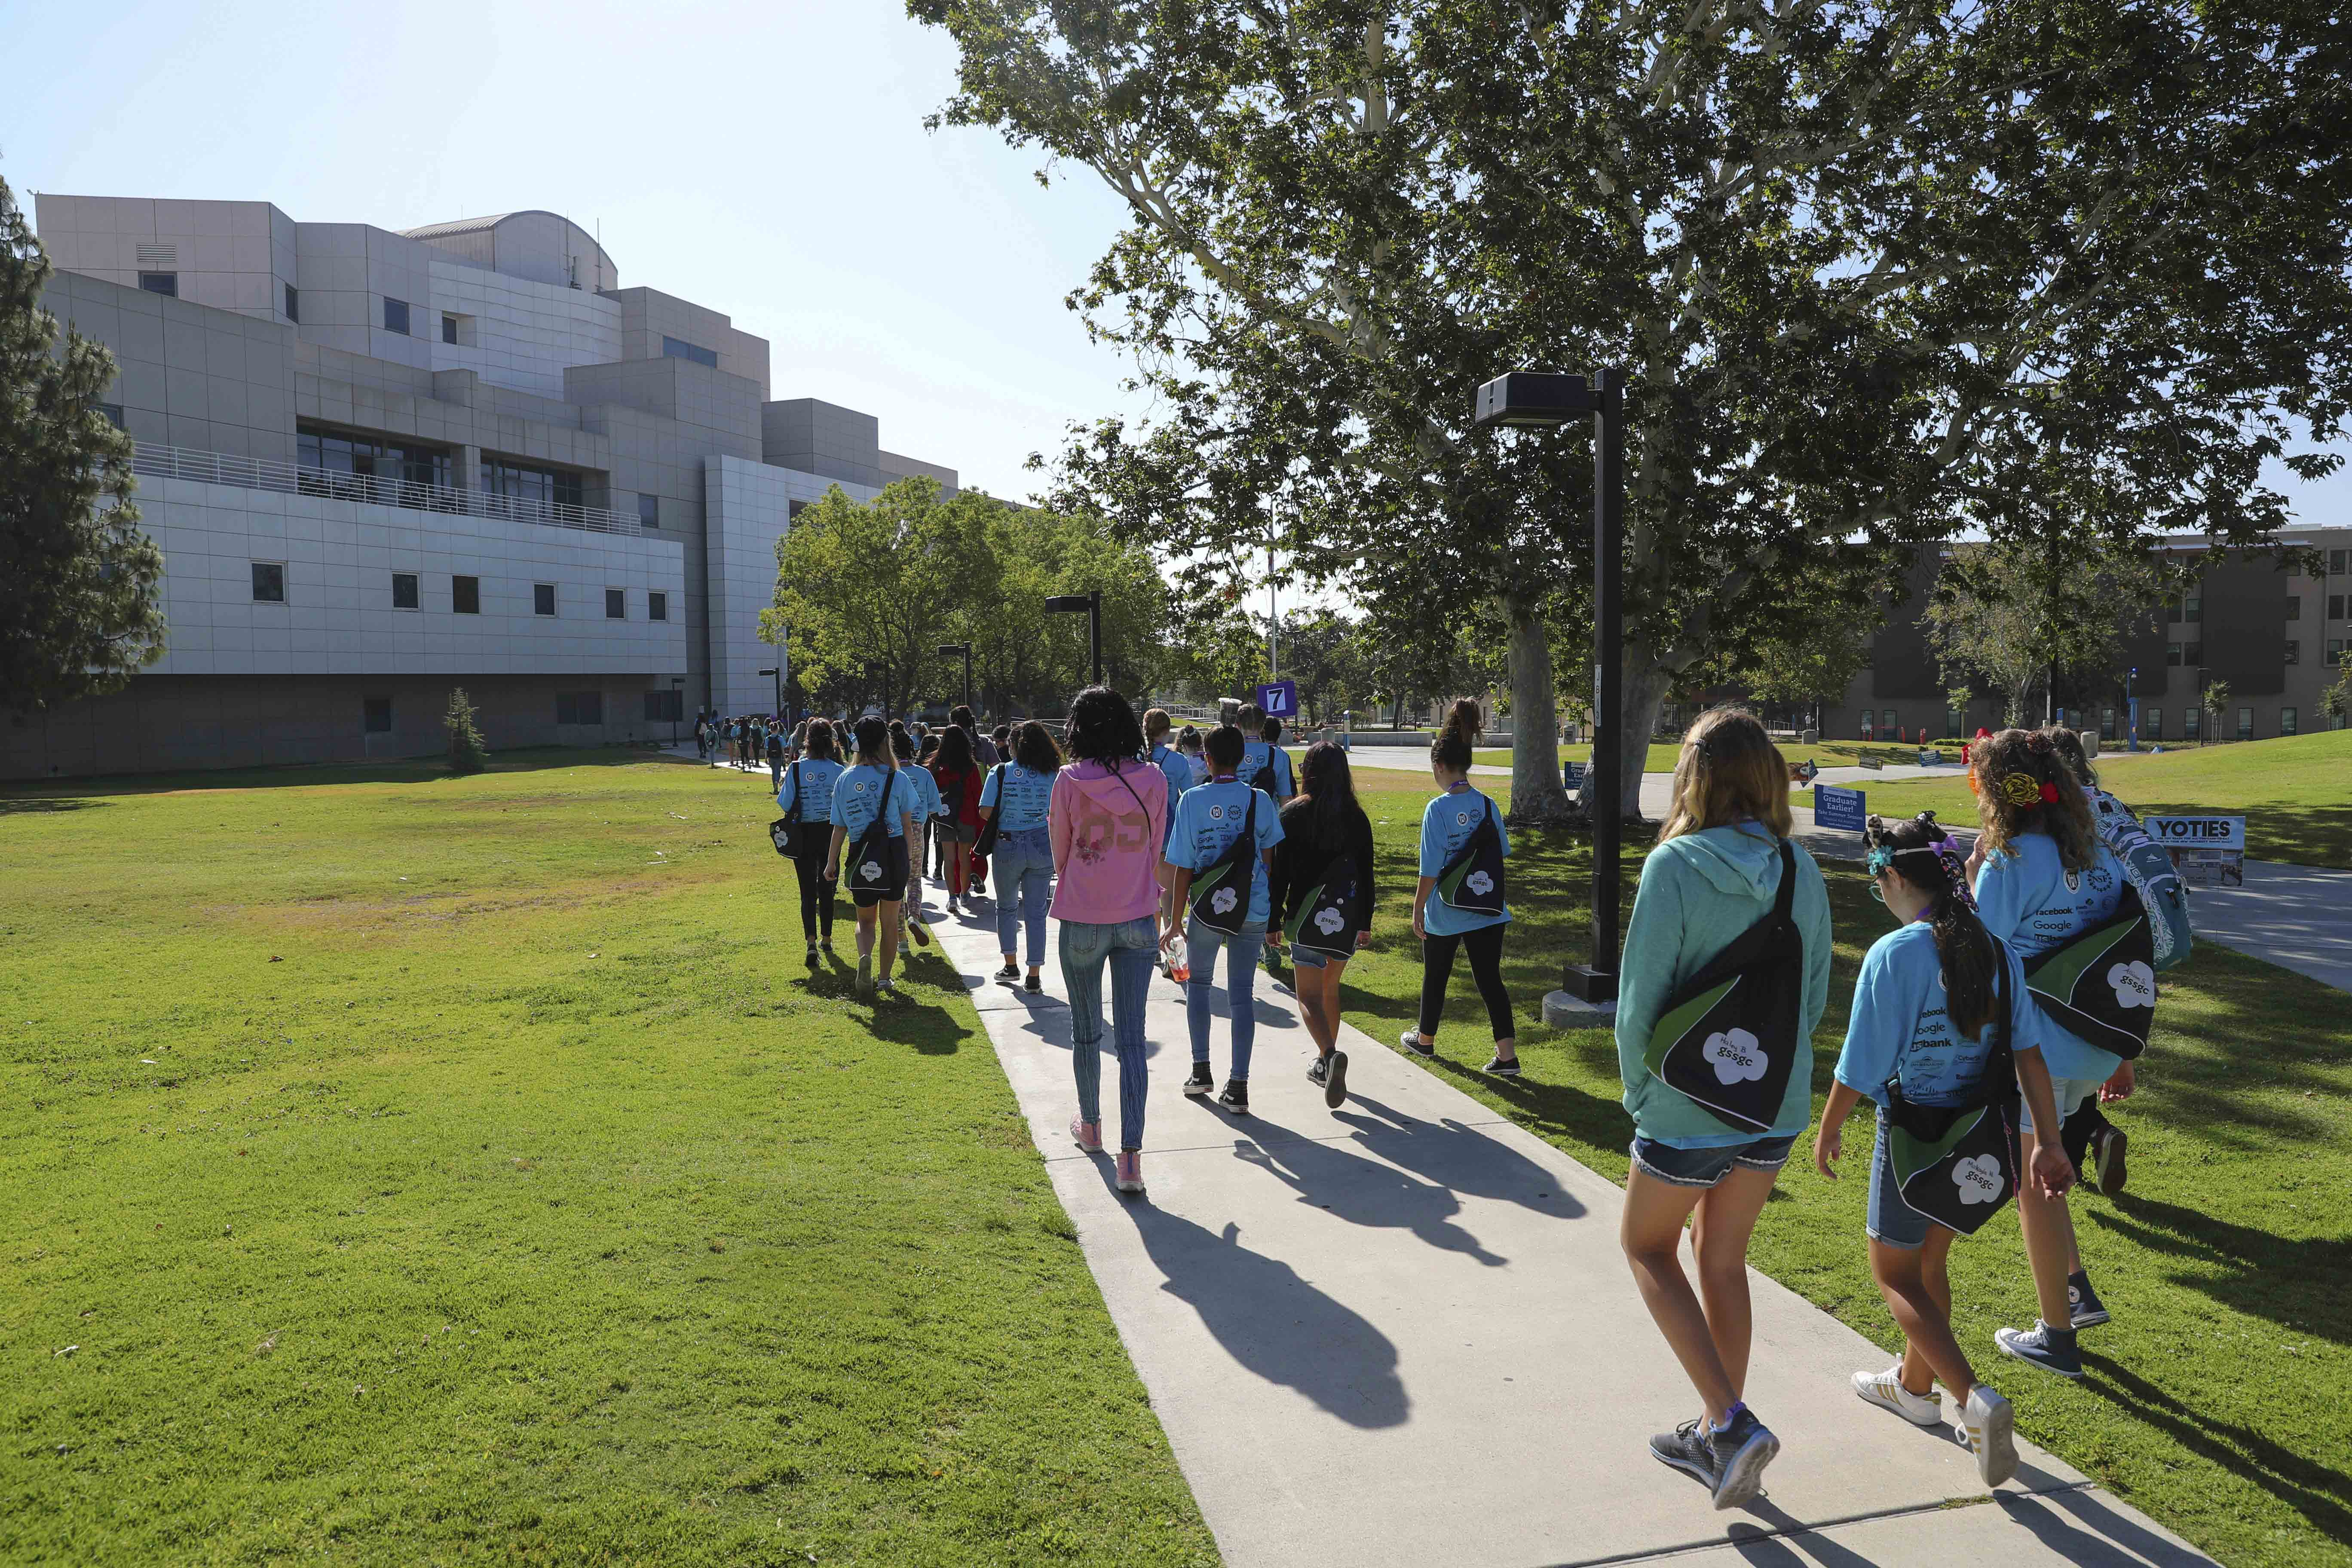 This year, Girl Scouts of San Gorgonio Council recruited 250 girls, specifically partnering with underserved schools in the community, for GenCyber camp.